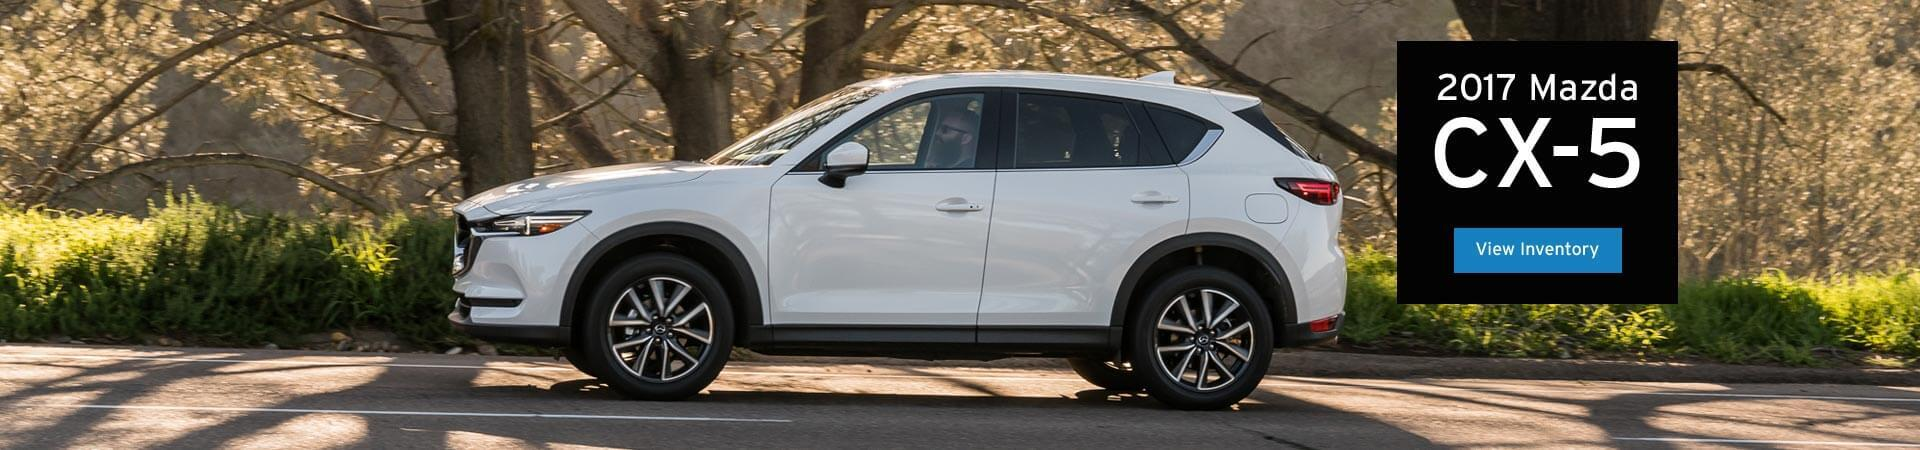 New Mazda CX-5 at Mazda of Old Saybrook